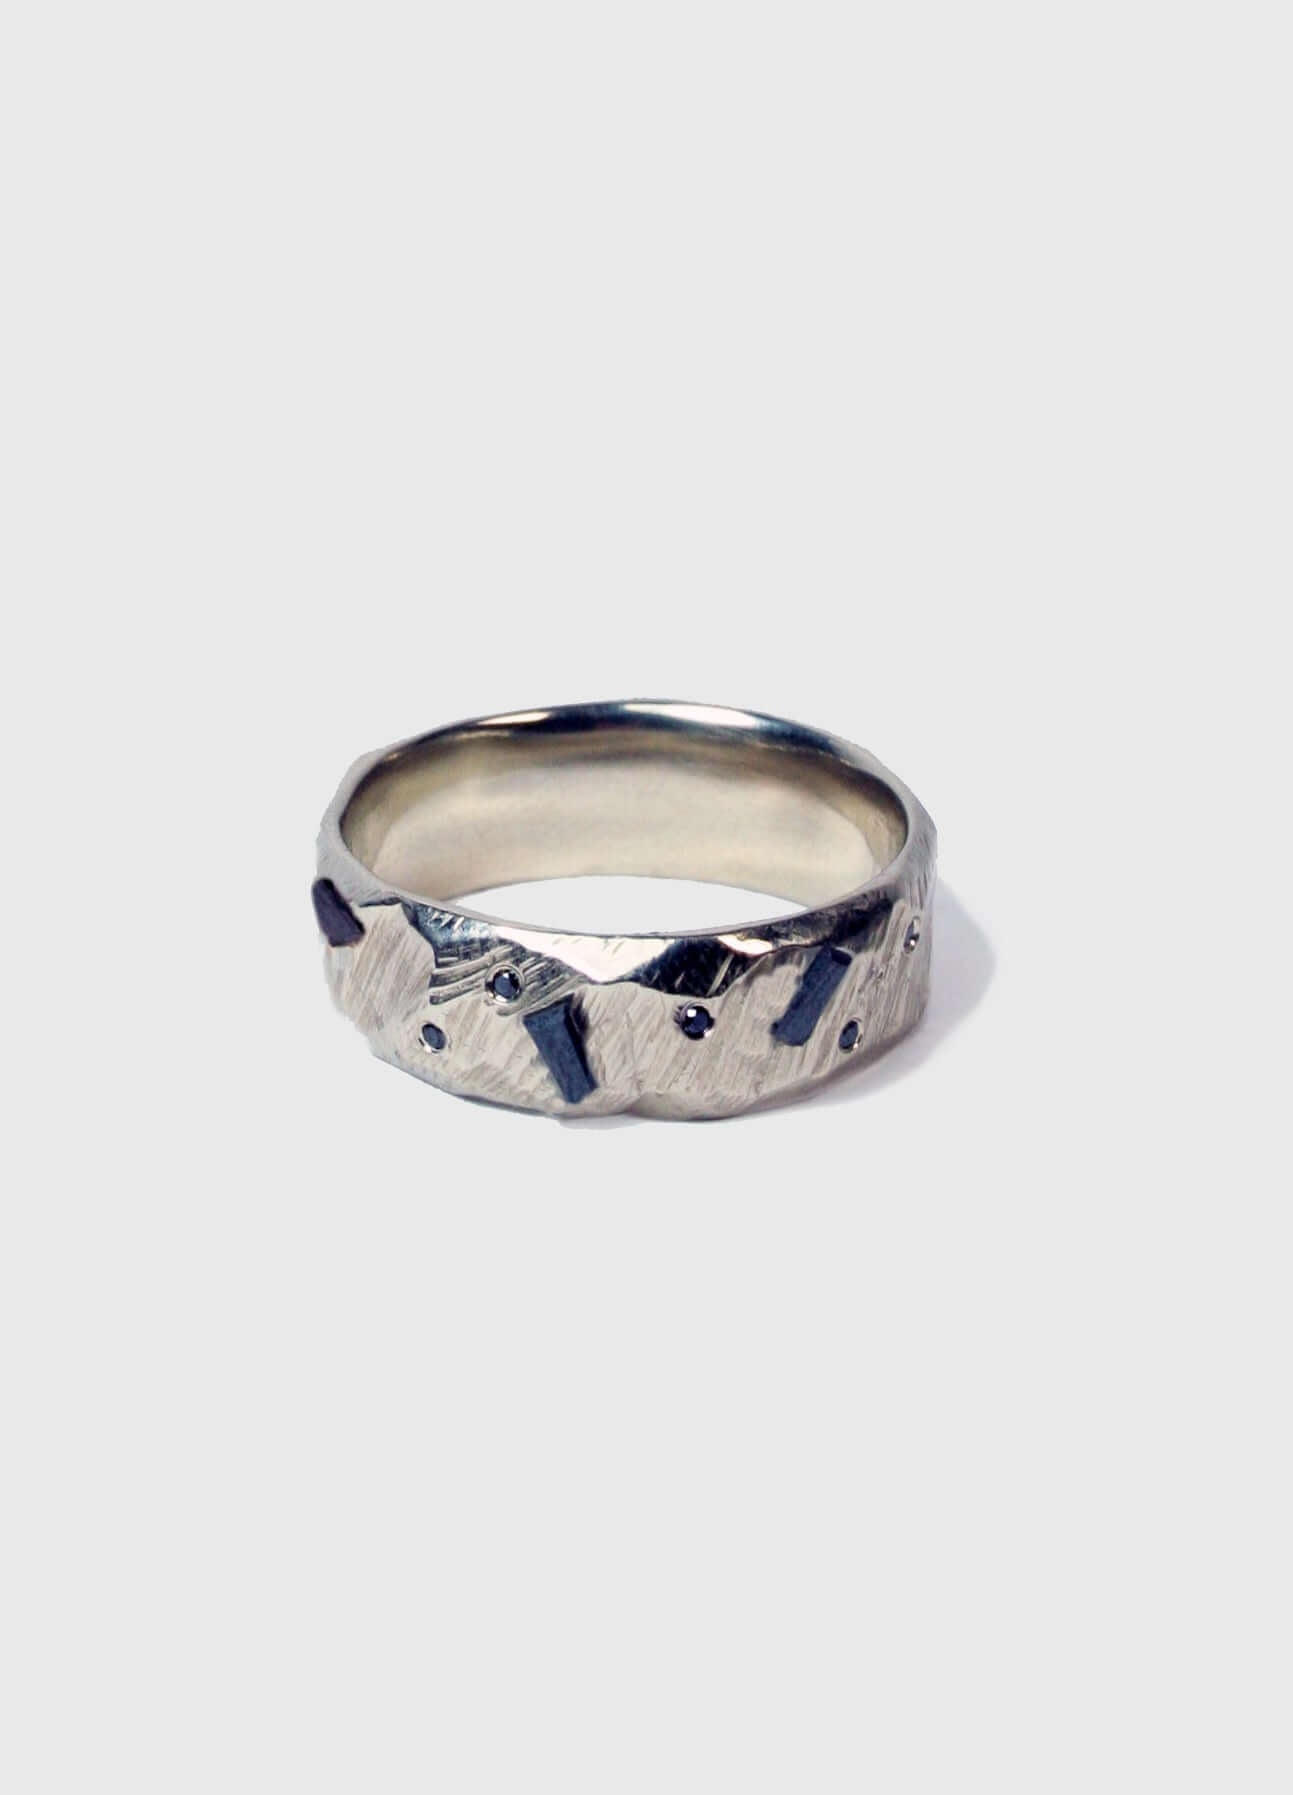 Ragged Wedding Band with black diamond baguettes